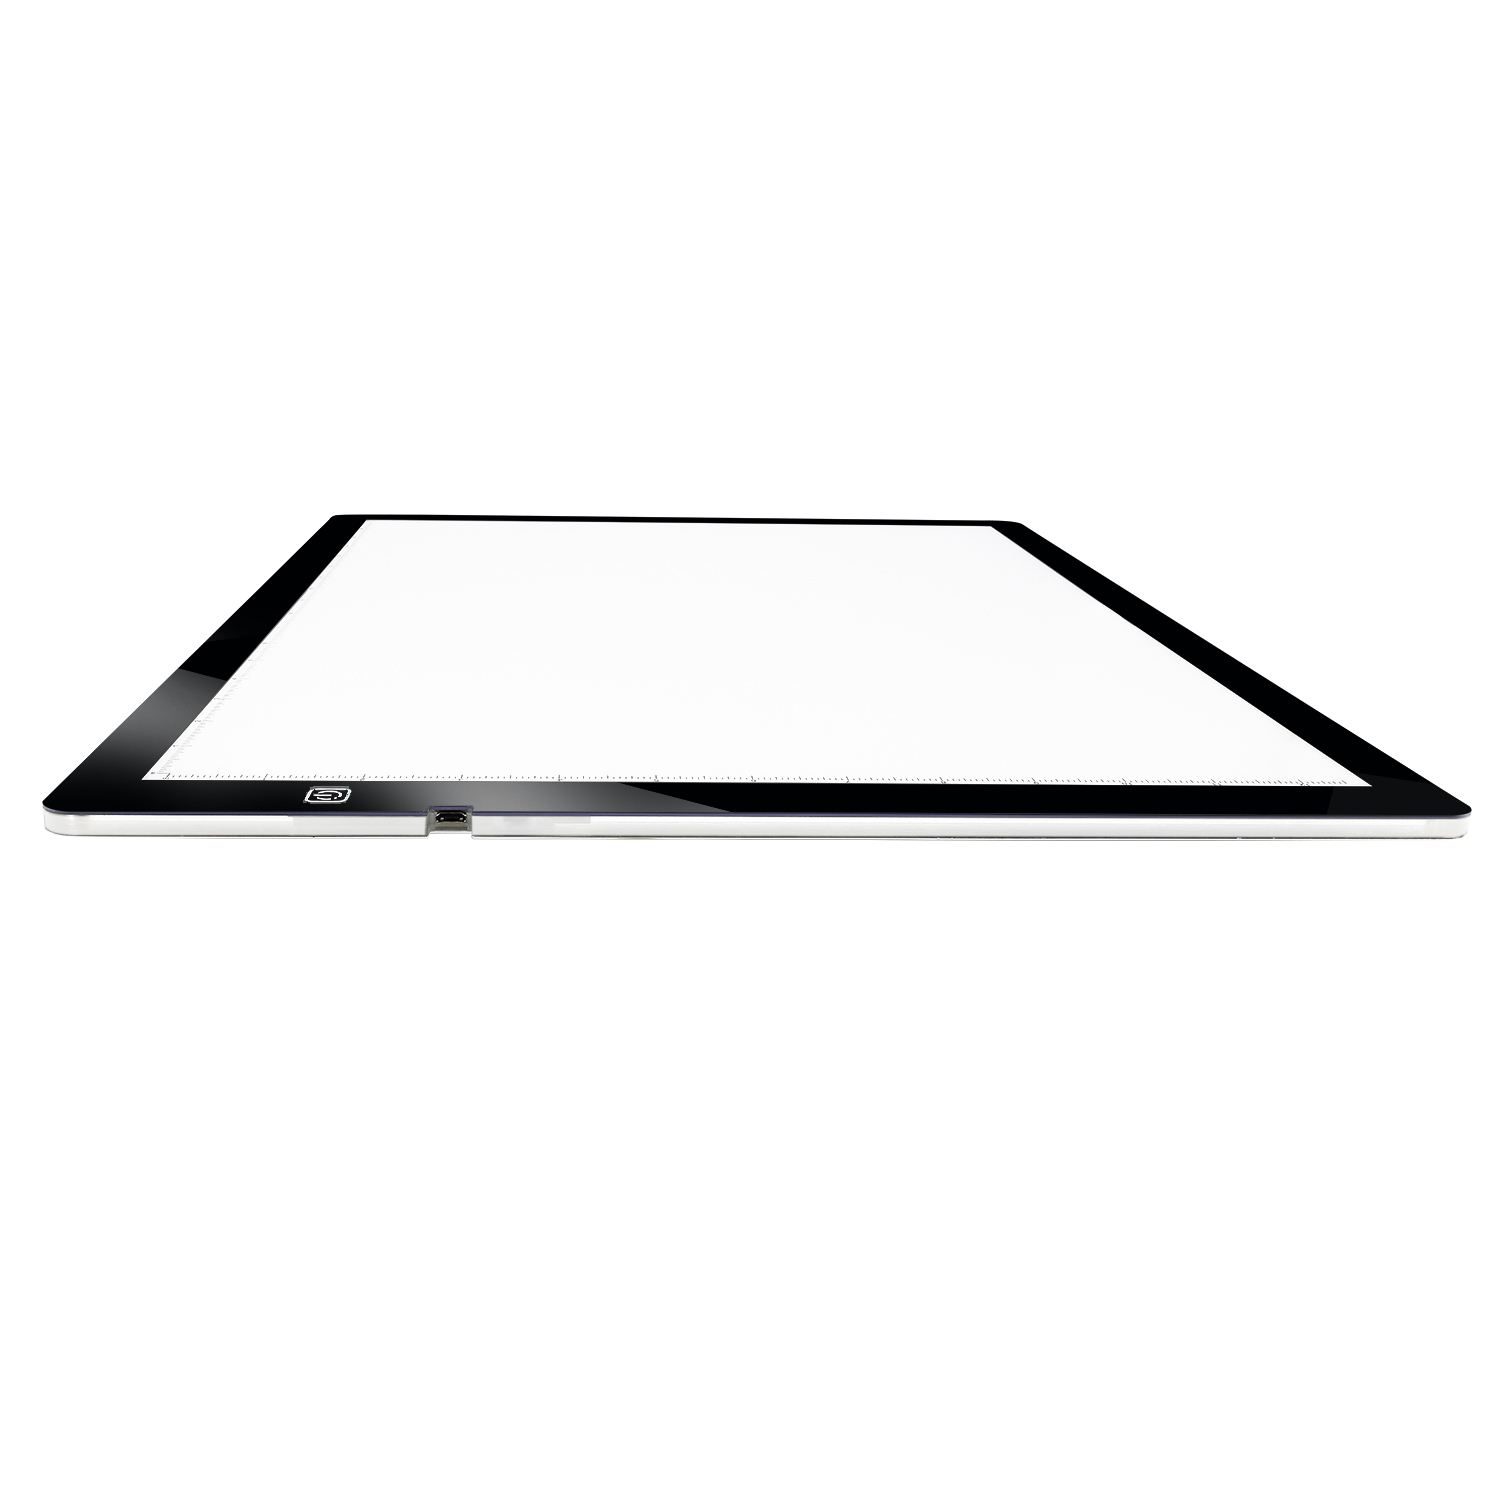 Adesso CYBERPAD P1 314.96 x 218.44mm USB Black graphic tablet